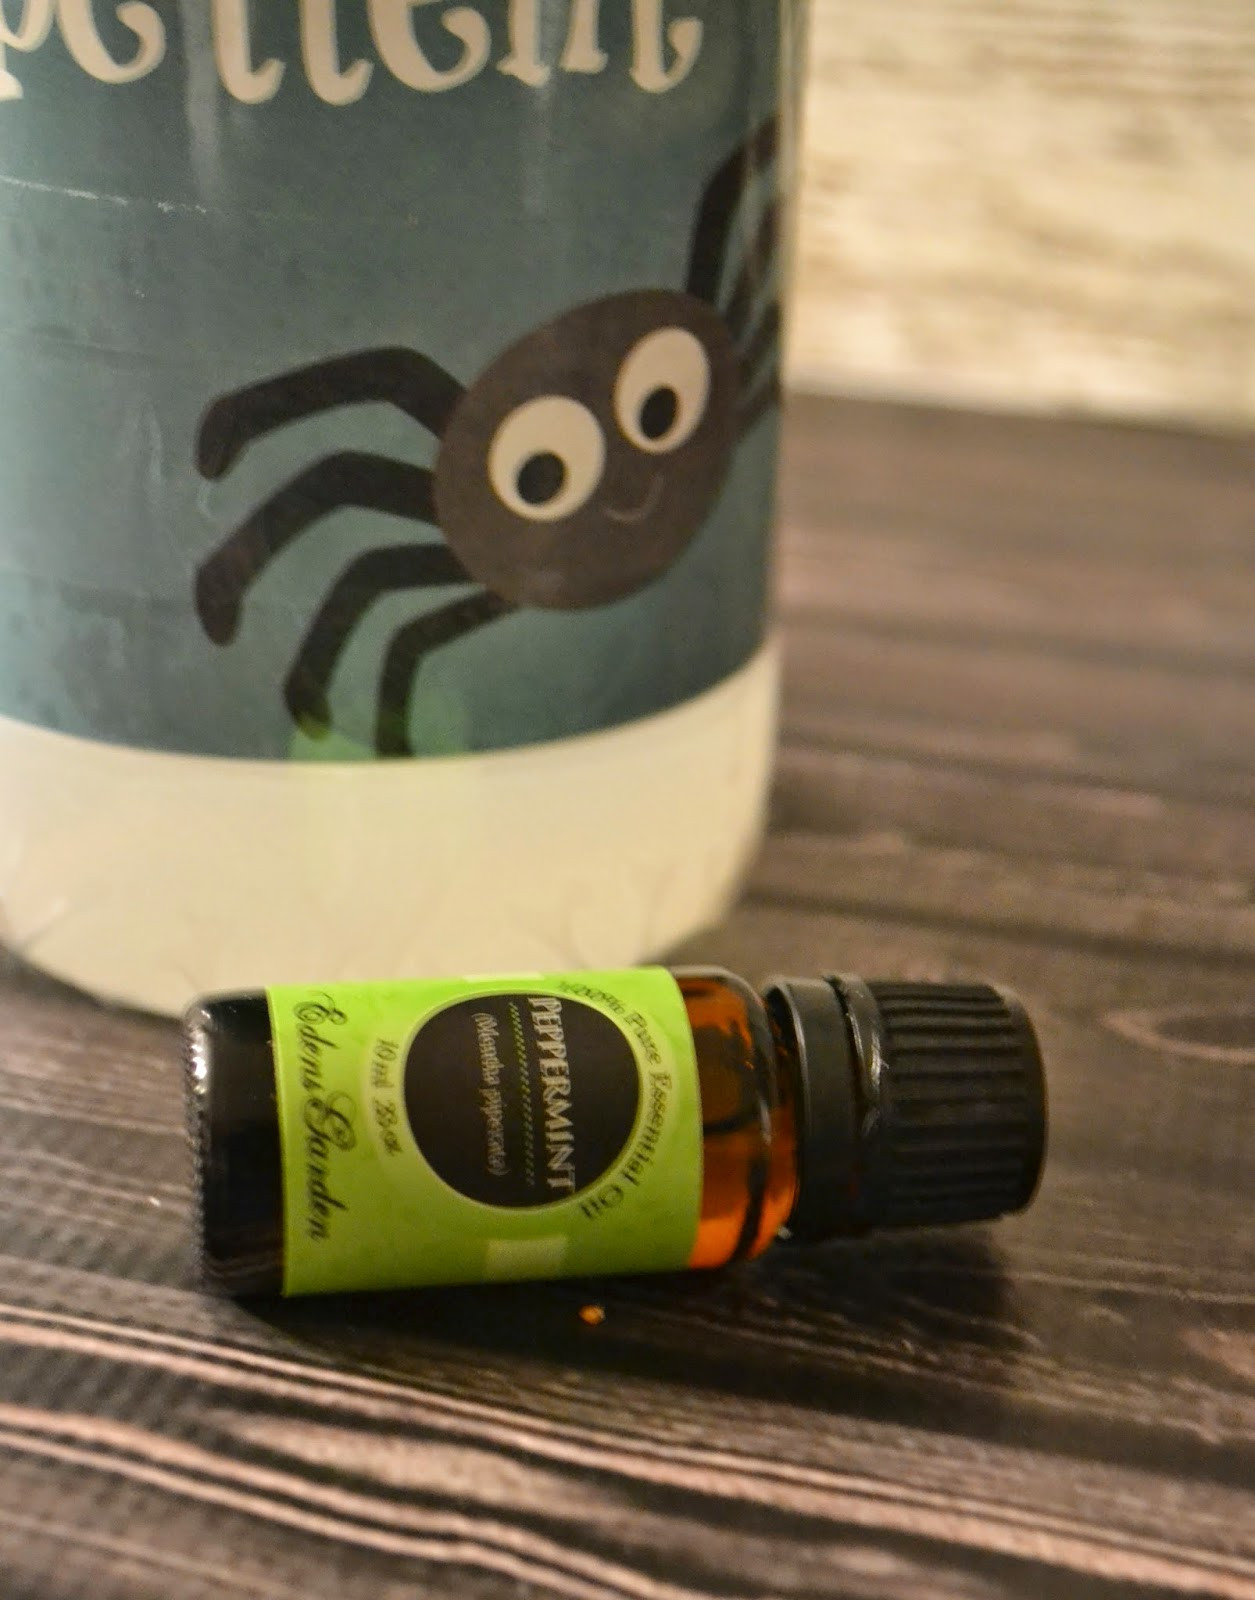 Best ideas about DIY Spider Killer . Save or Pin Homemade Non Toxic Spider Repellent DIY Now.